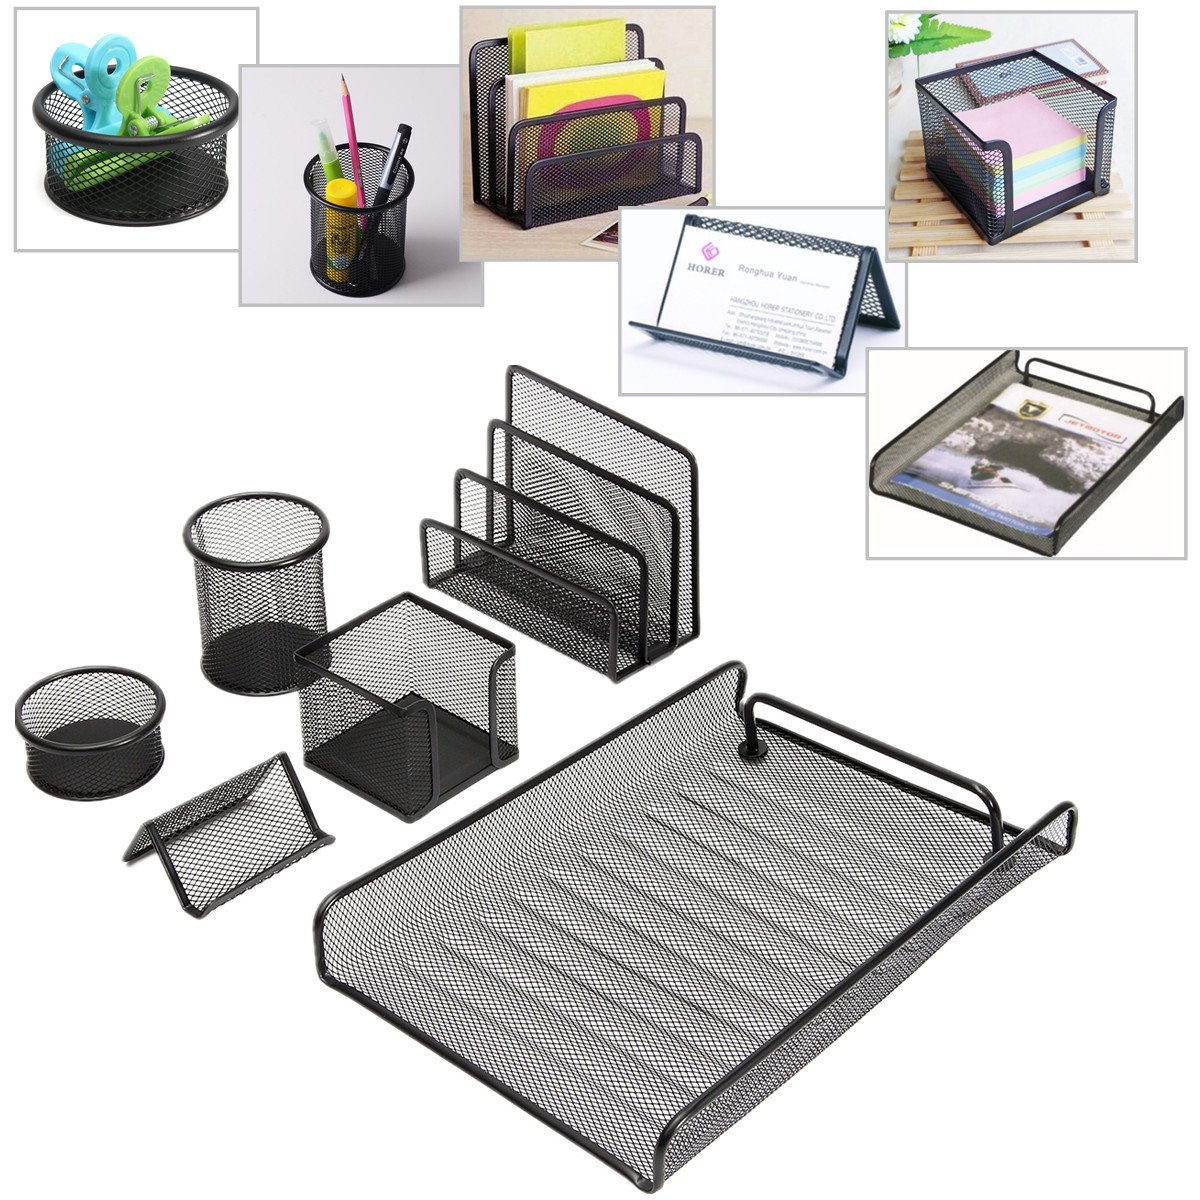 Caveen Desktop Organizer Office Supplies Office Documents Organizer Caddy (6 pcs),Pen Cup Document Tray Mail Sorter Business Card Holder Clip Cup Sticky Note Holder